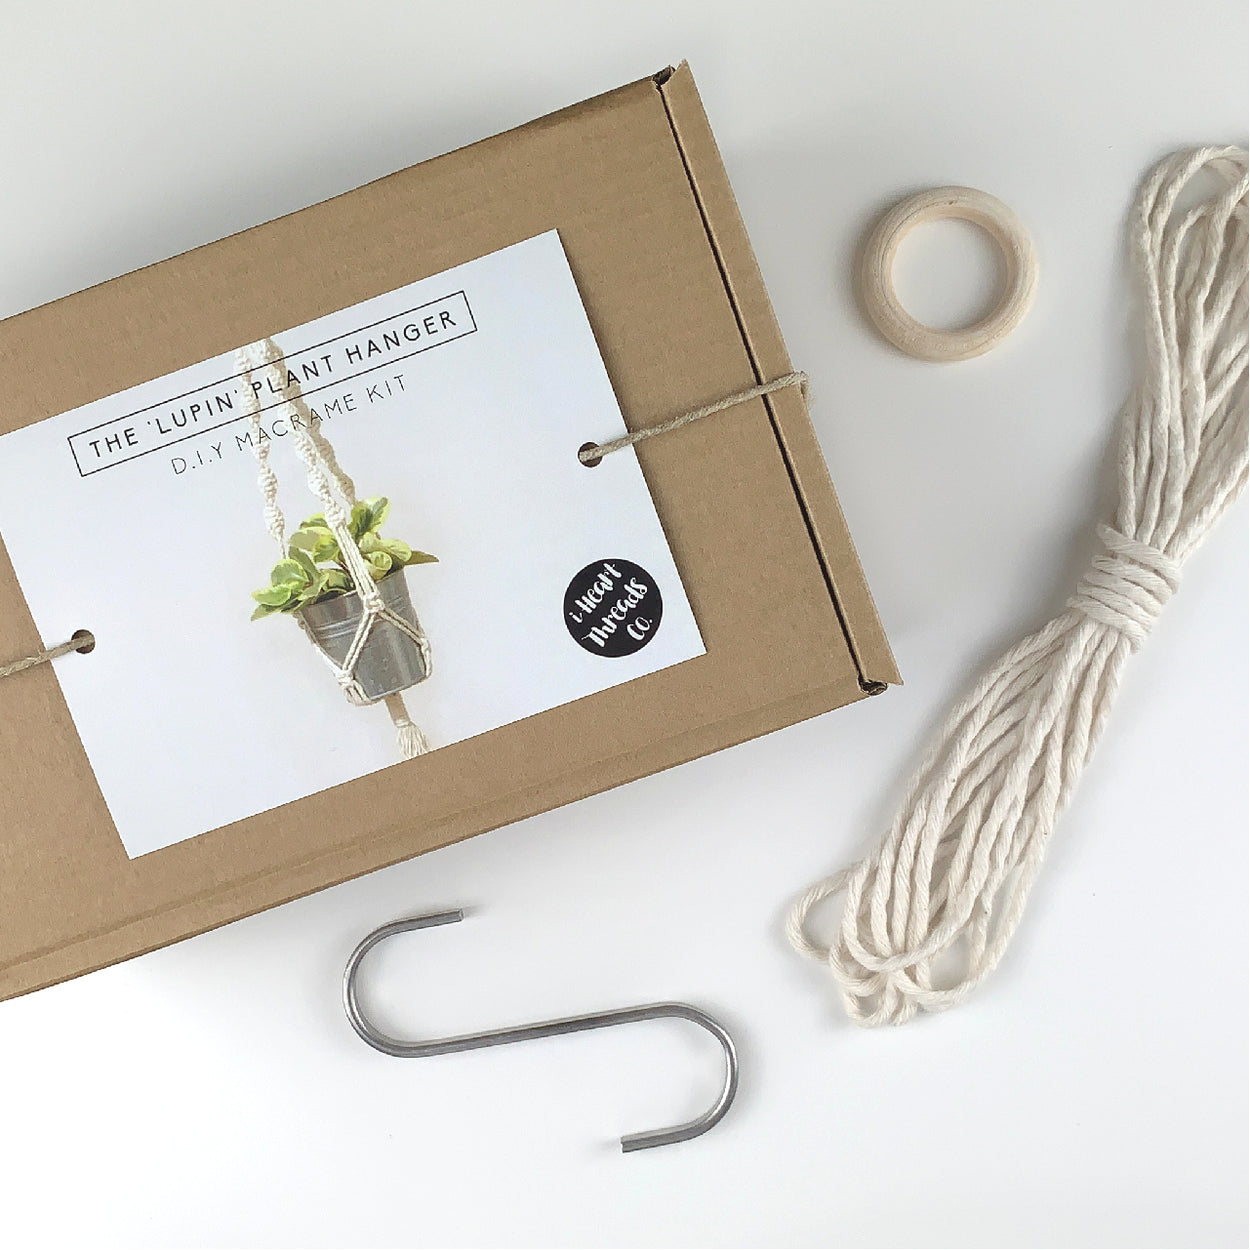 THE 'LUPIN' PLANT HANGER - D.I.Y KIT